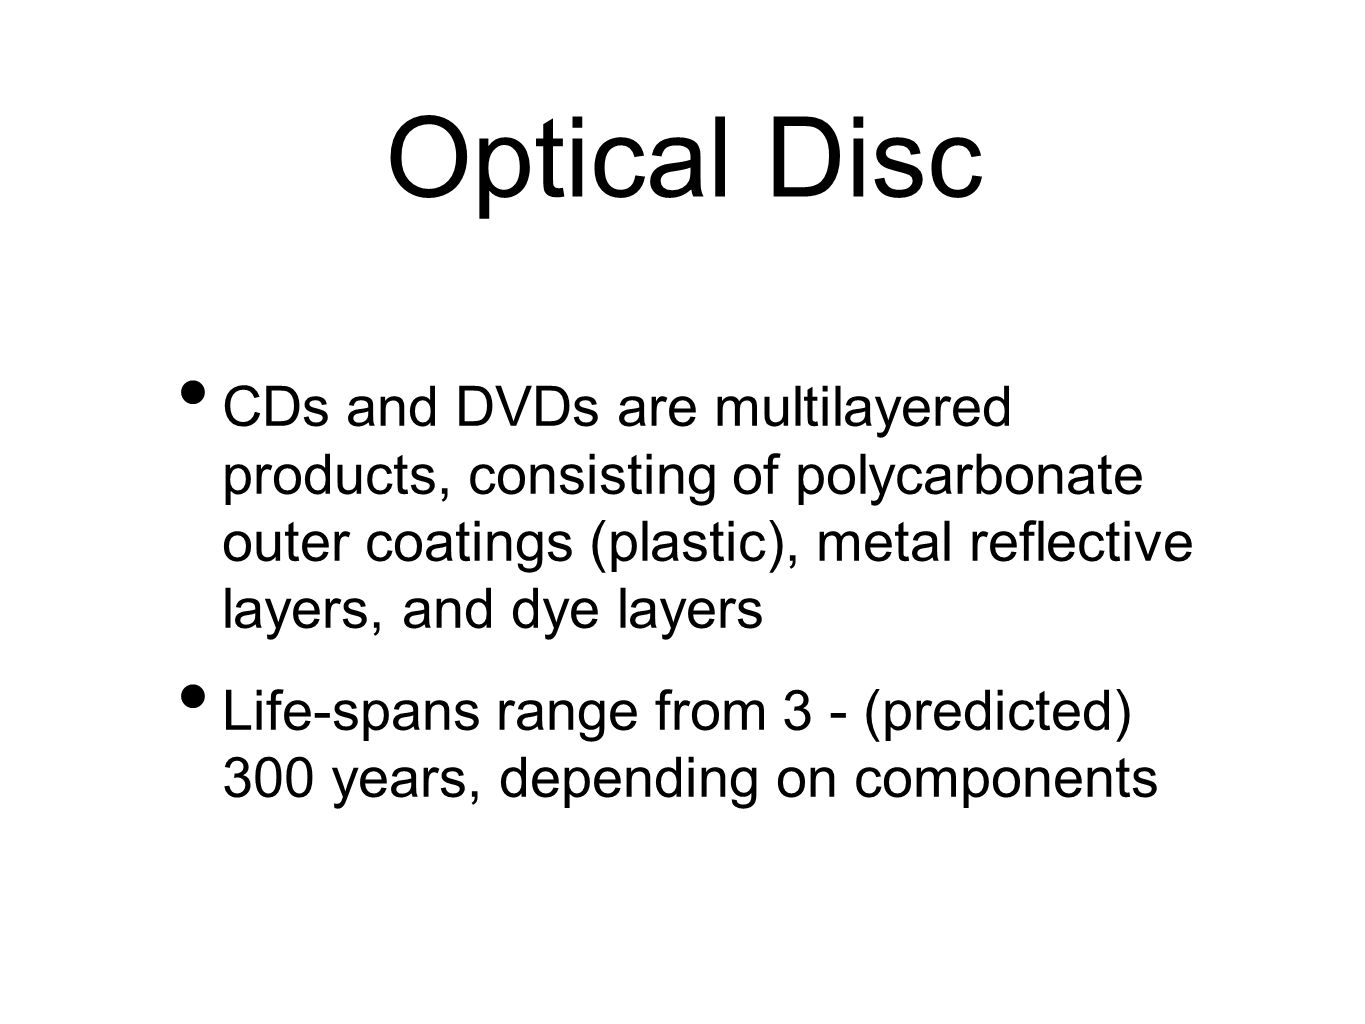 Optical Disc CDs and DVDs are multilayered products, consisting of polycarbonate outer coatings (plastic), metal reflective layers, and dye layers Life-spans range from 3 - (predicted) 300 years, depending on components